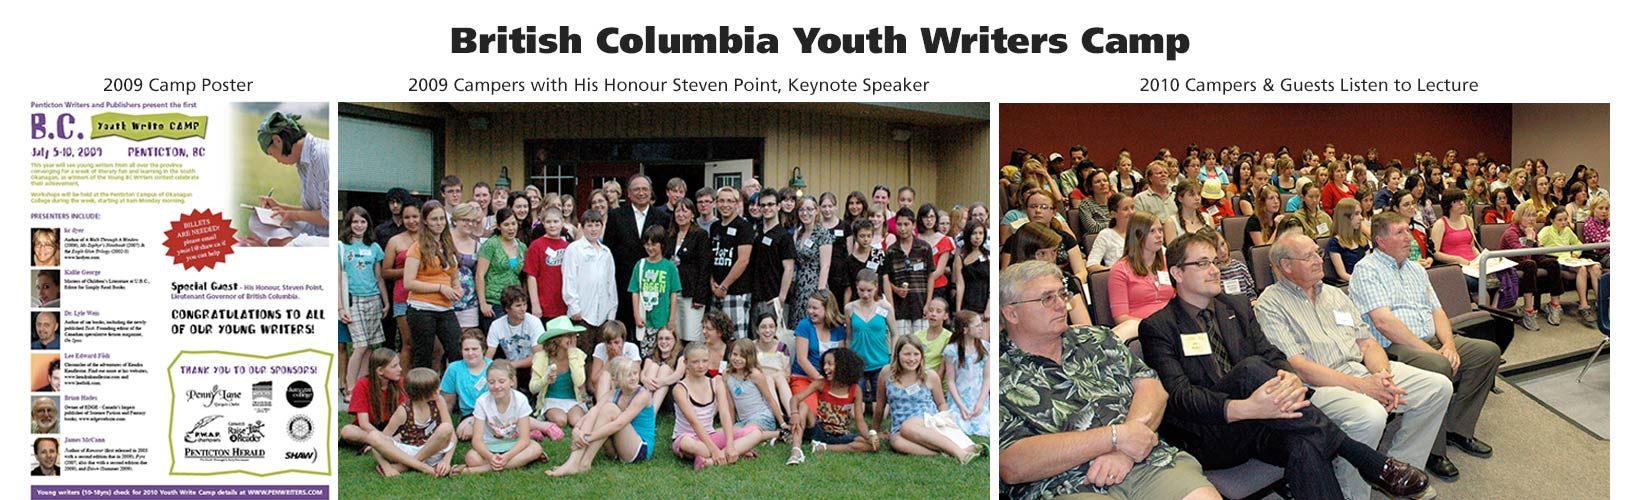 Columbia university summer program for high school students creative writing